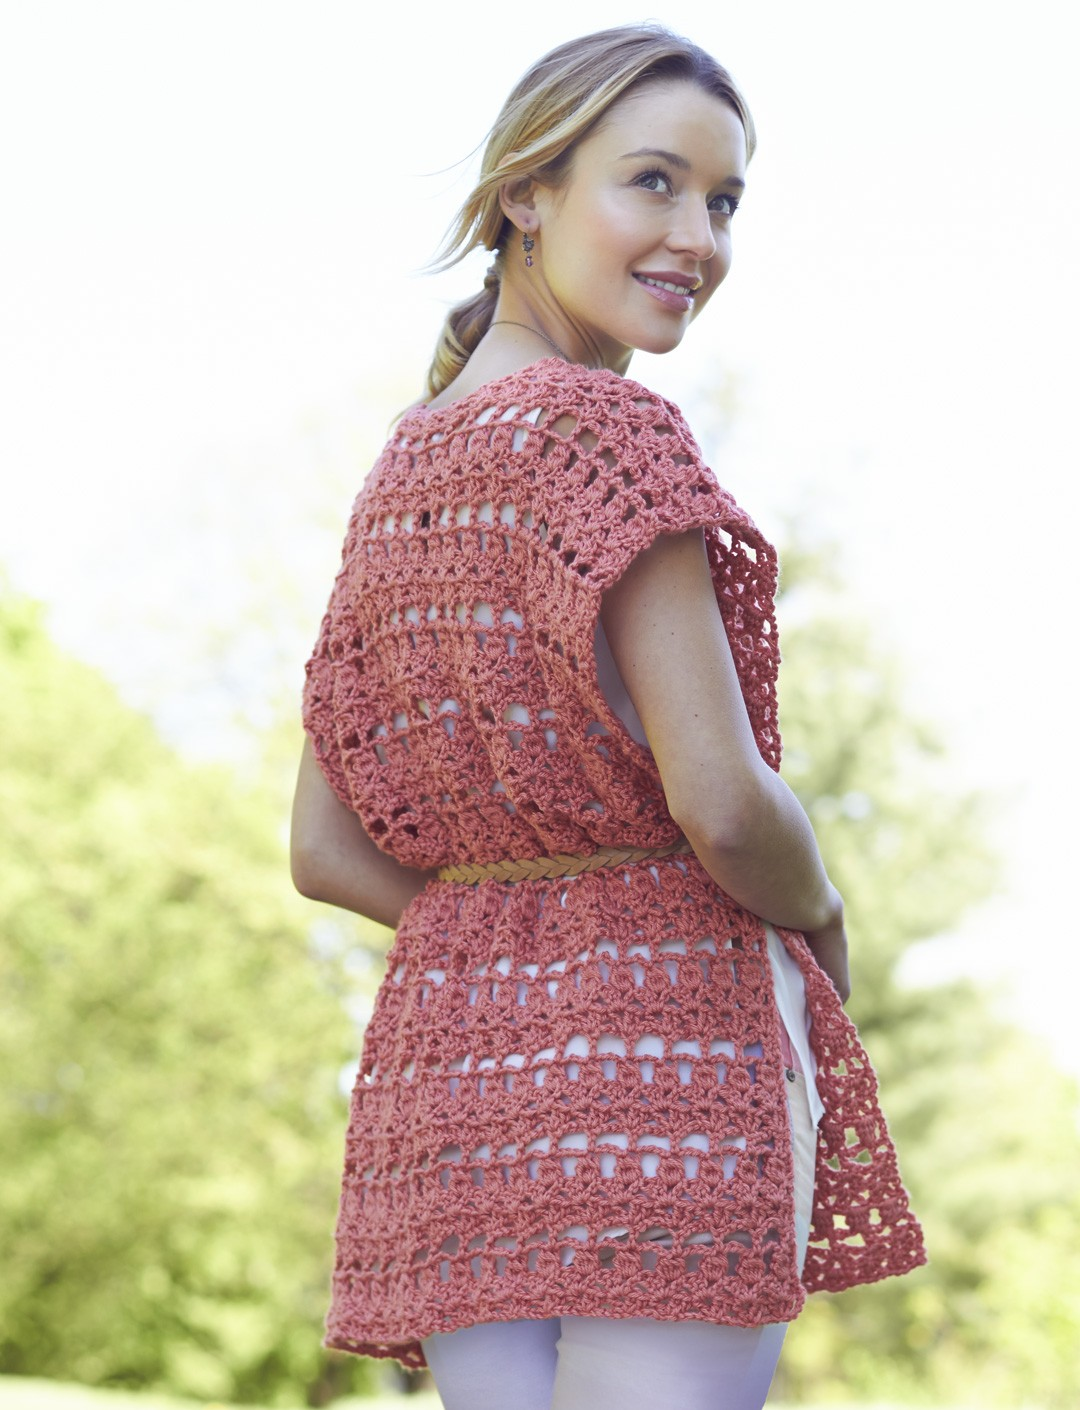 Crochet Short Ruana - Patterns Yarnspirations